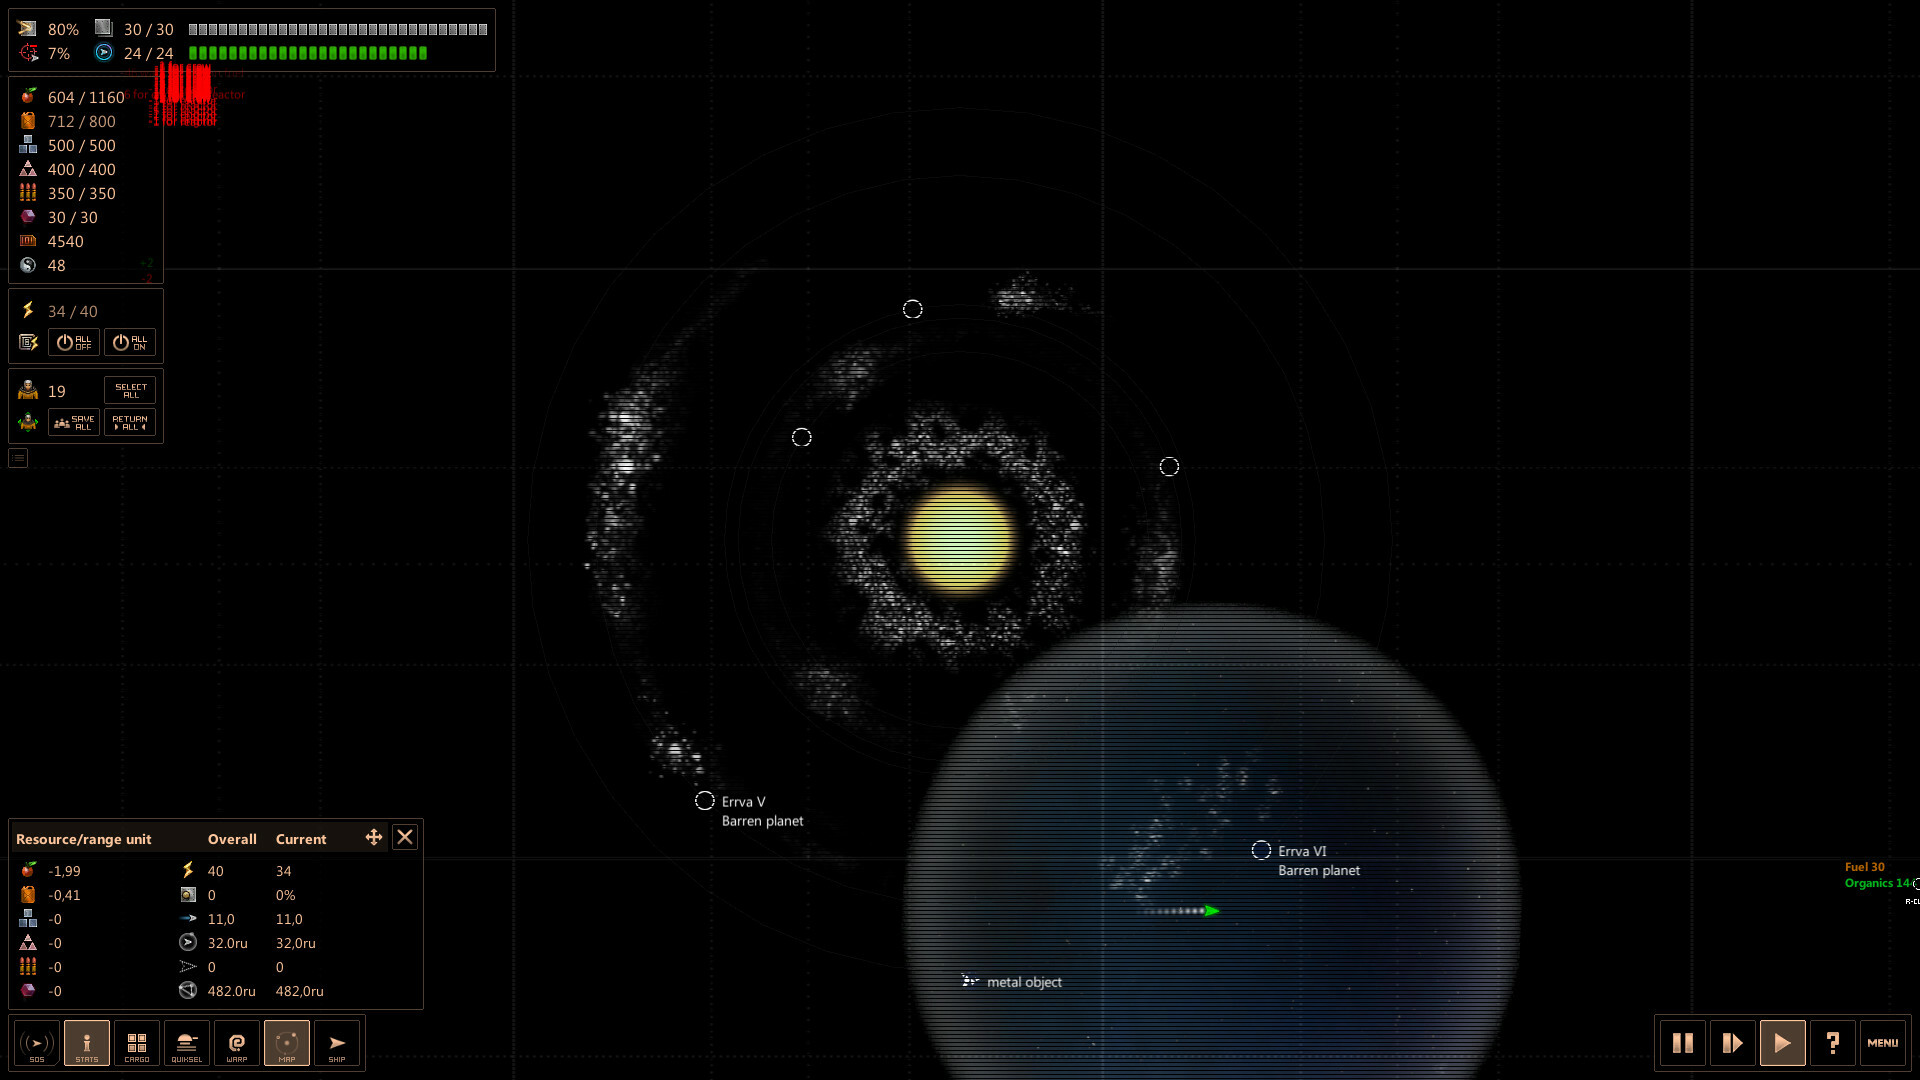 Shortest Trip to Earth screenshot 3